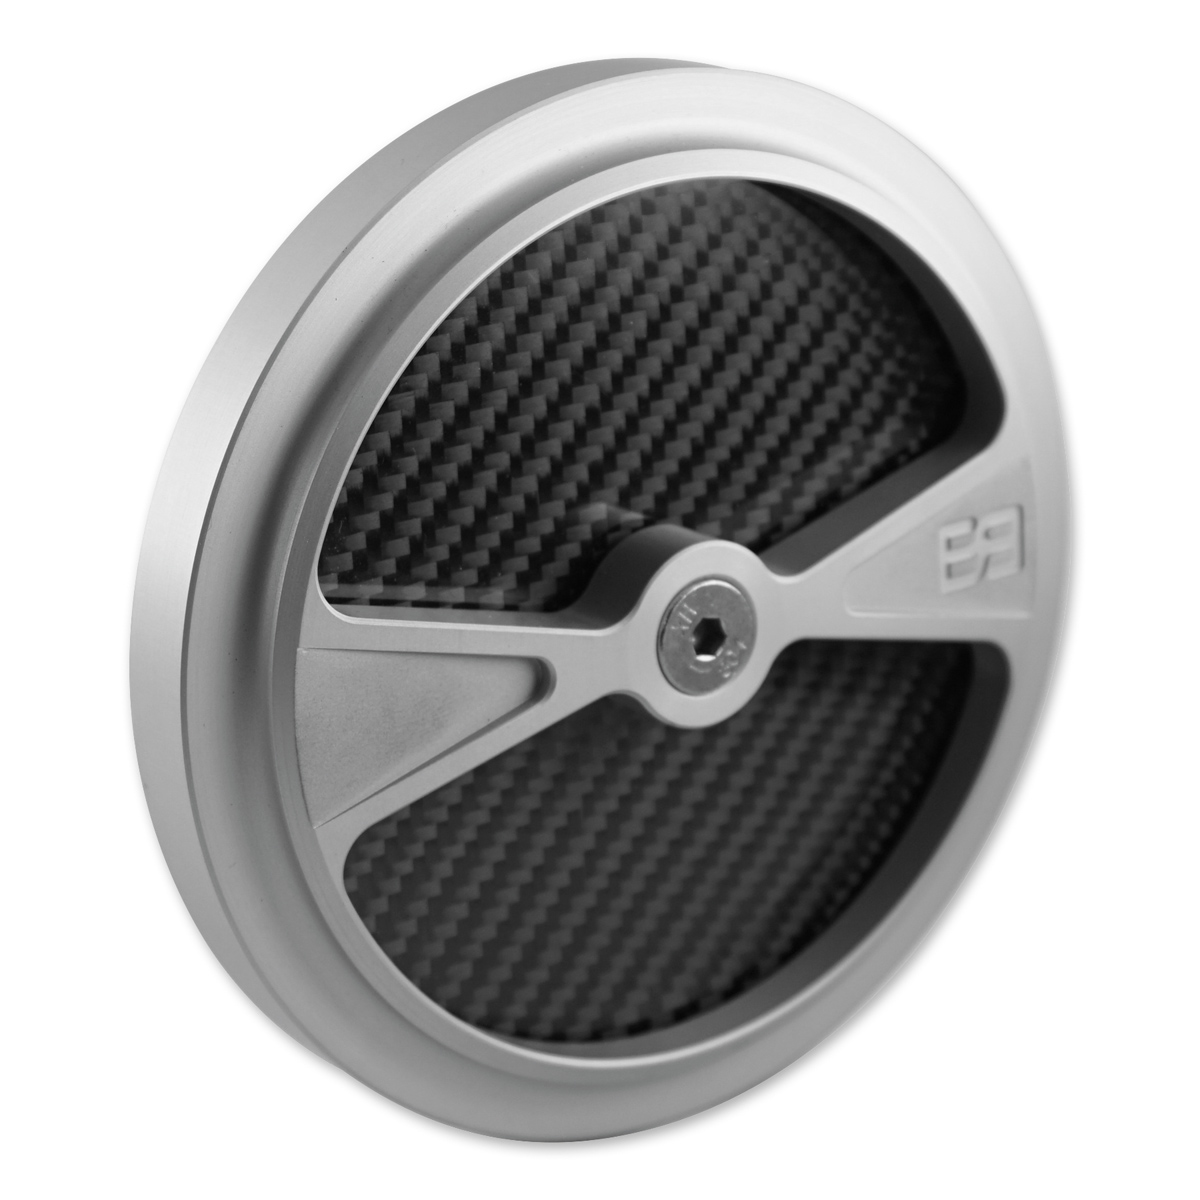 Brass Balls Cycles F1 Air Cleaner Cover for S&S Stealth Air Cleaners Clear